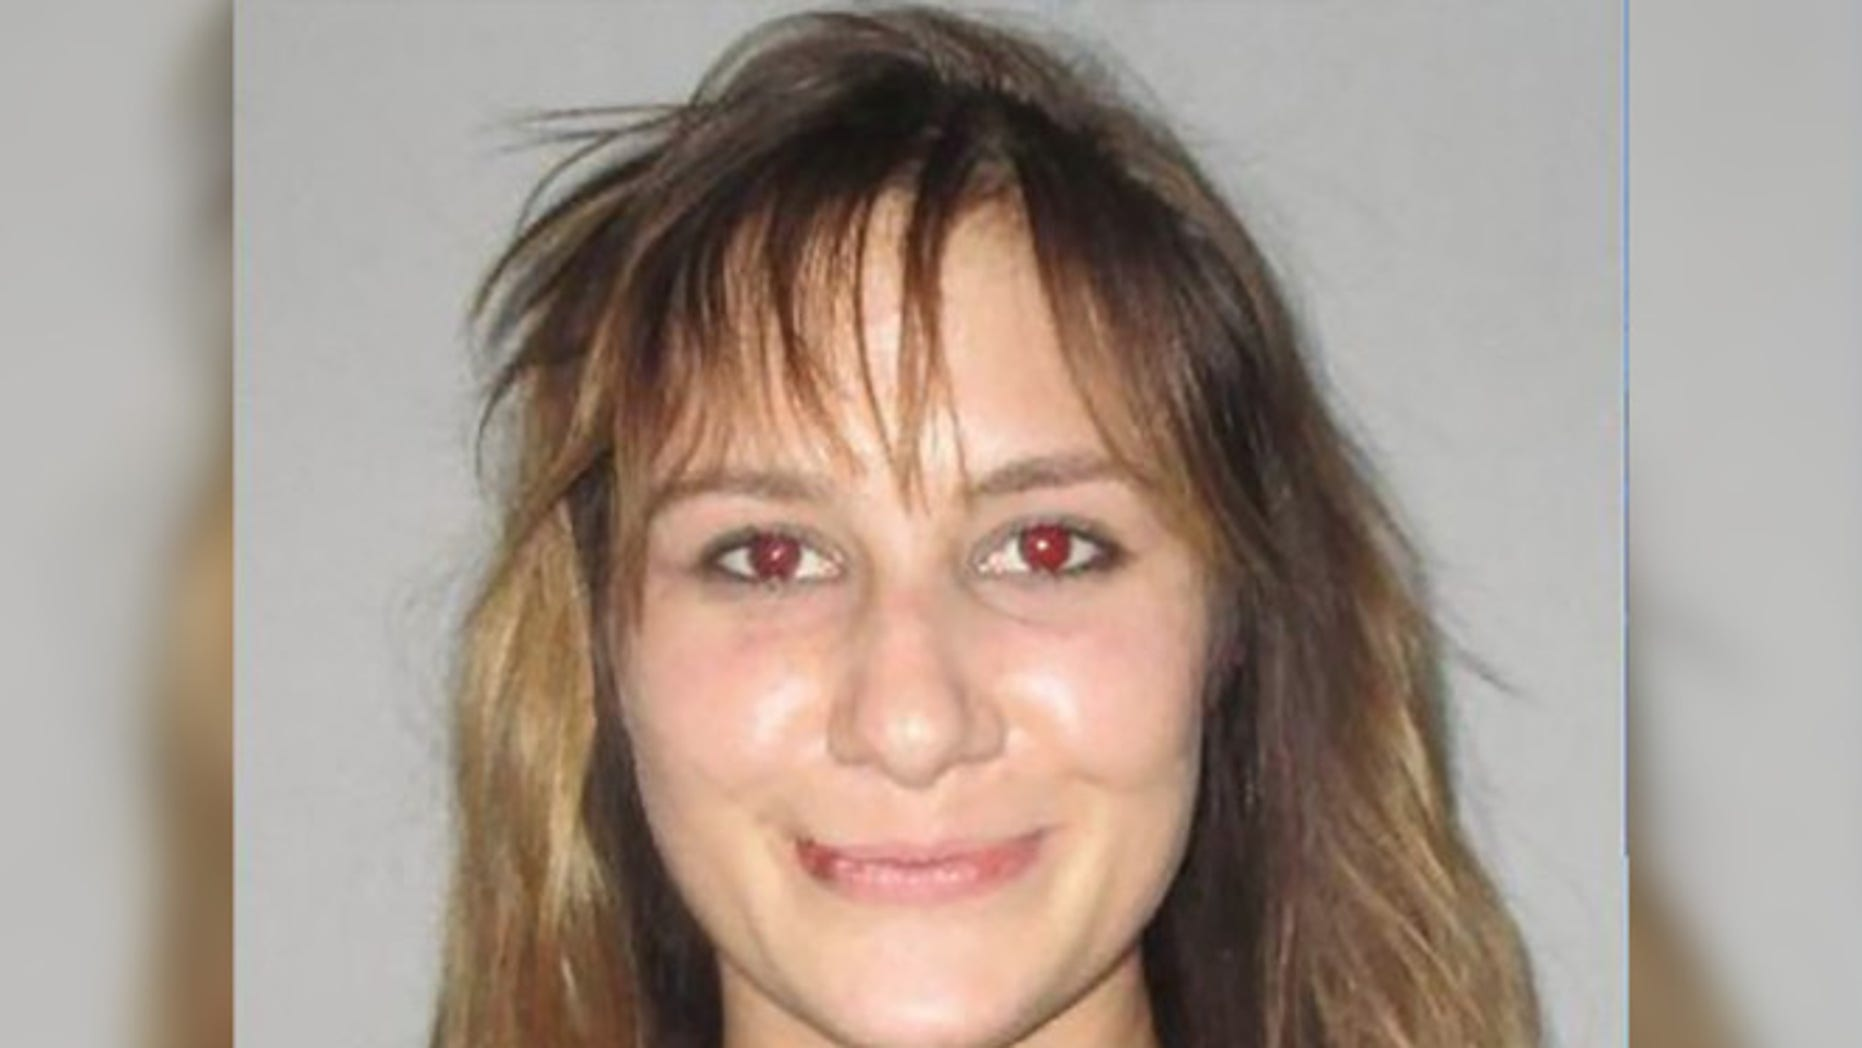 Shelby McDowell, 20, was arrested Sunday night after crashing a wedding. (Flagler County Jail)